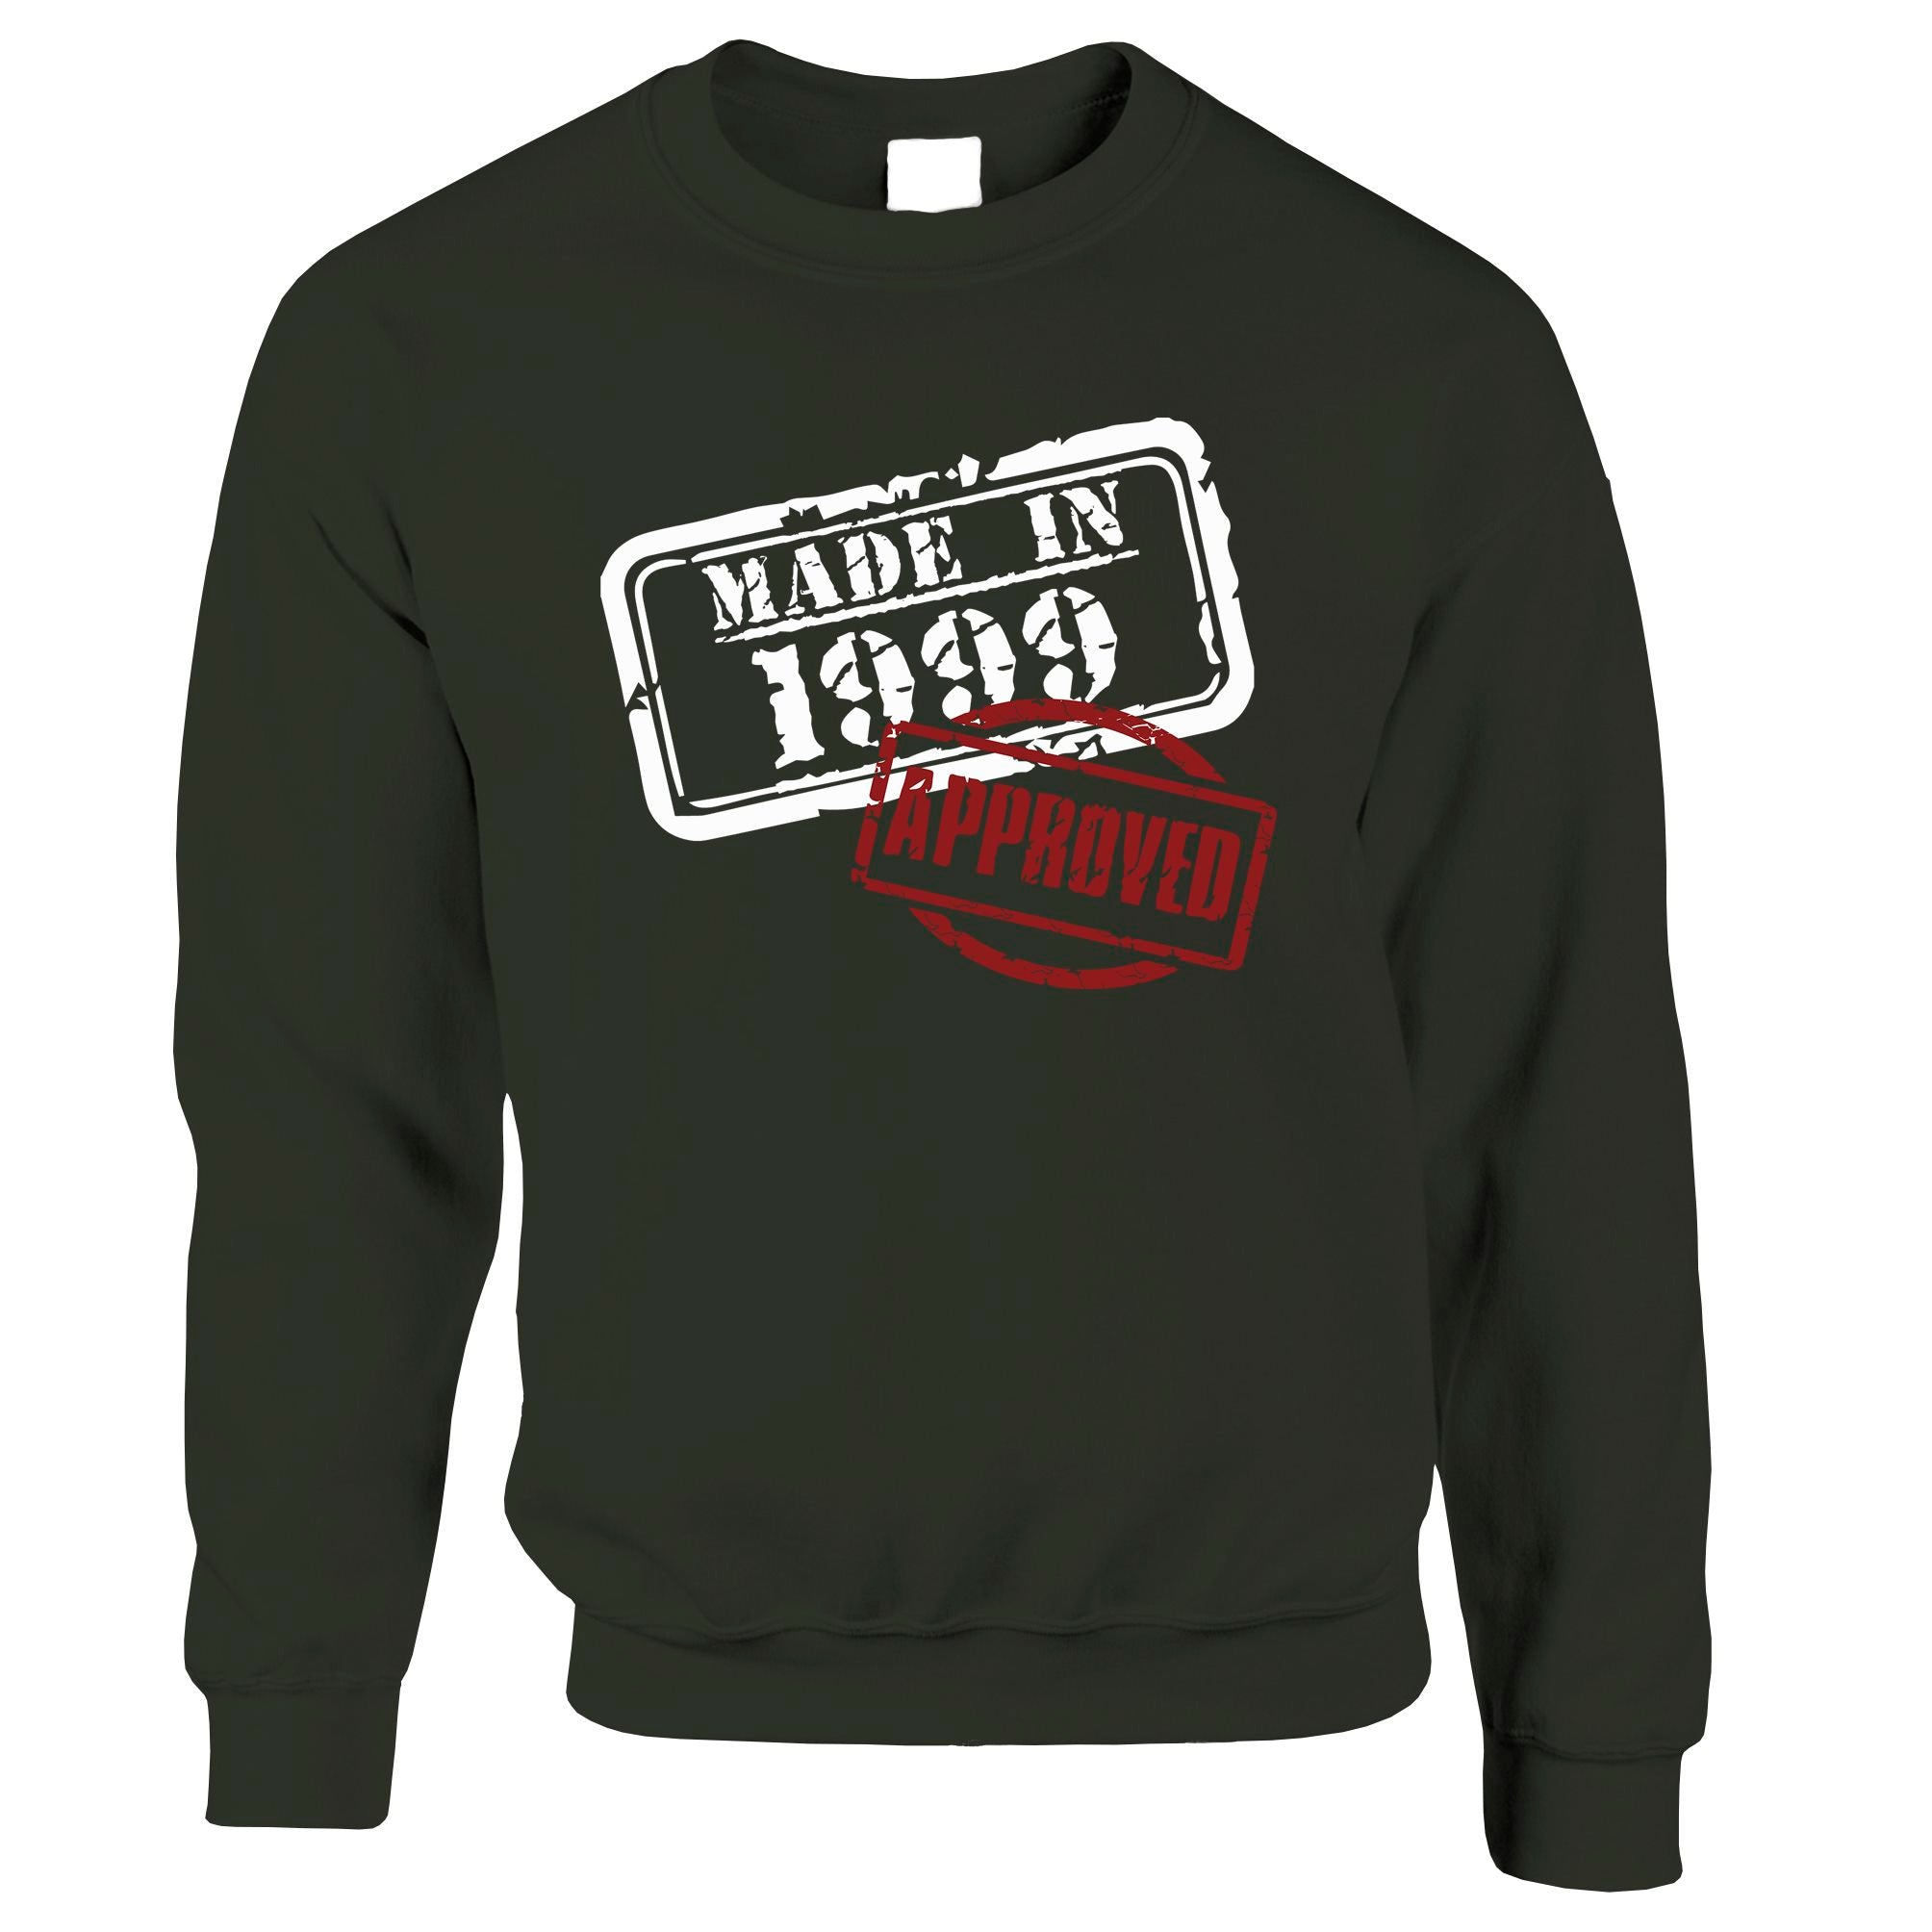 21st Birthday Jumper Distressed Made in 1999 Approved Sweatshirt